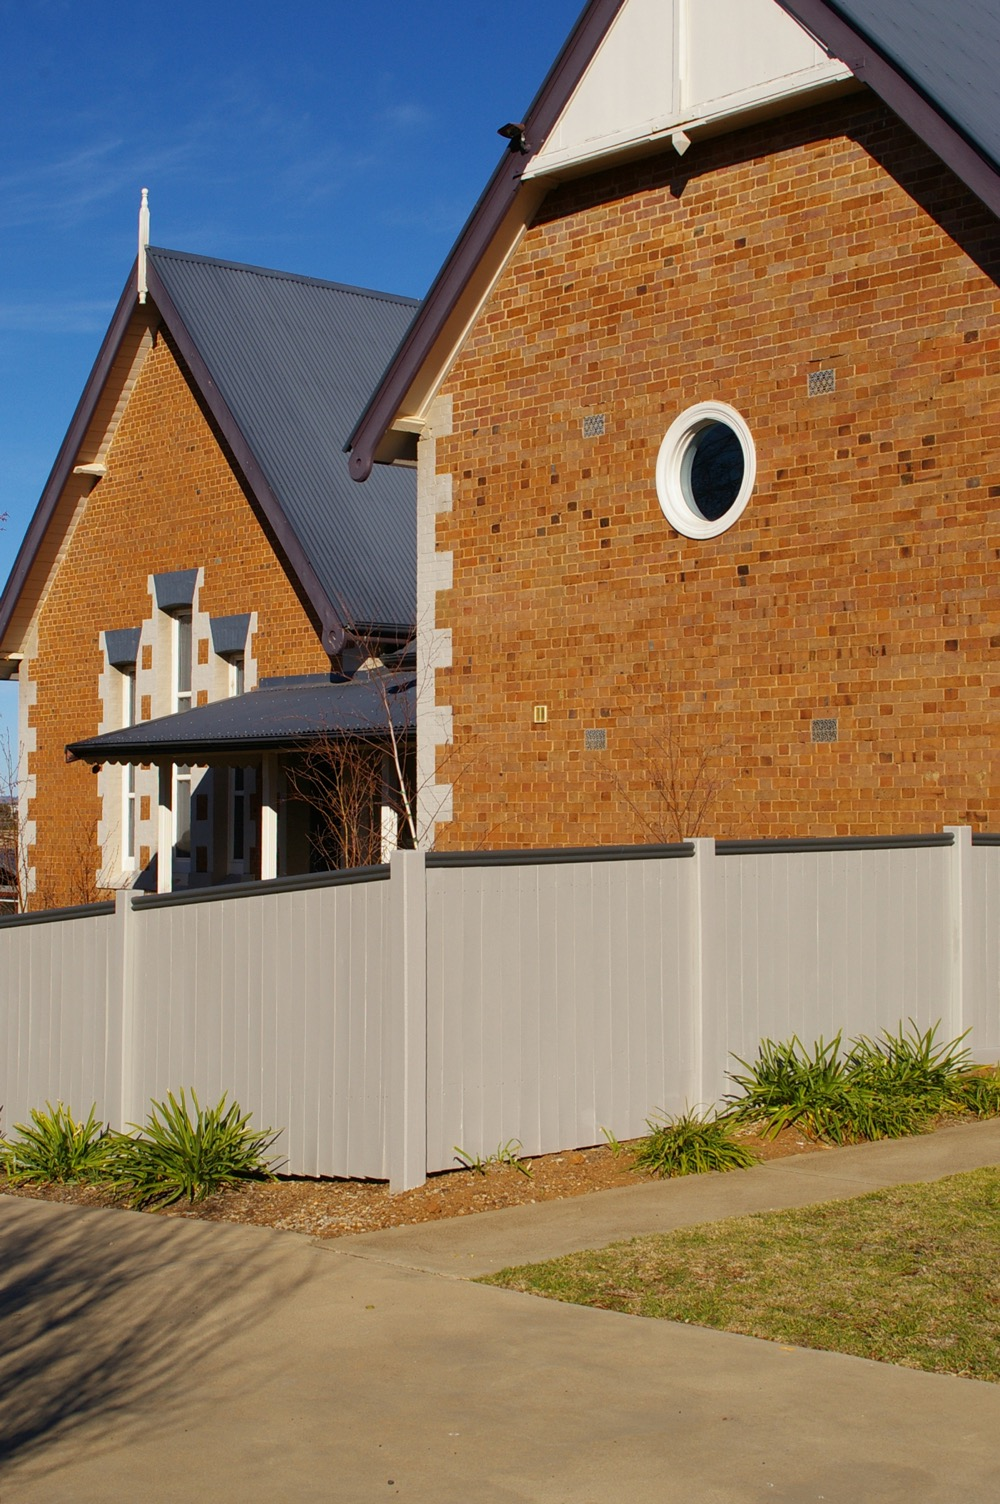 roof and fence painting in forbes nsw